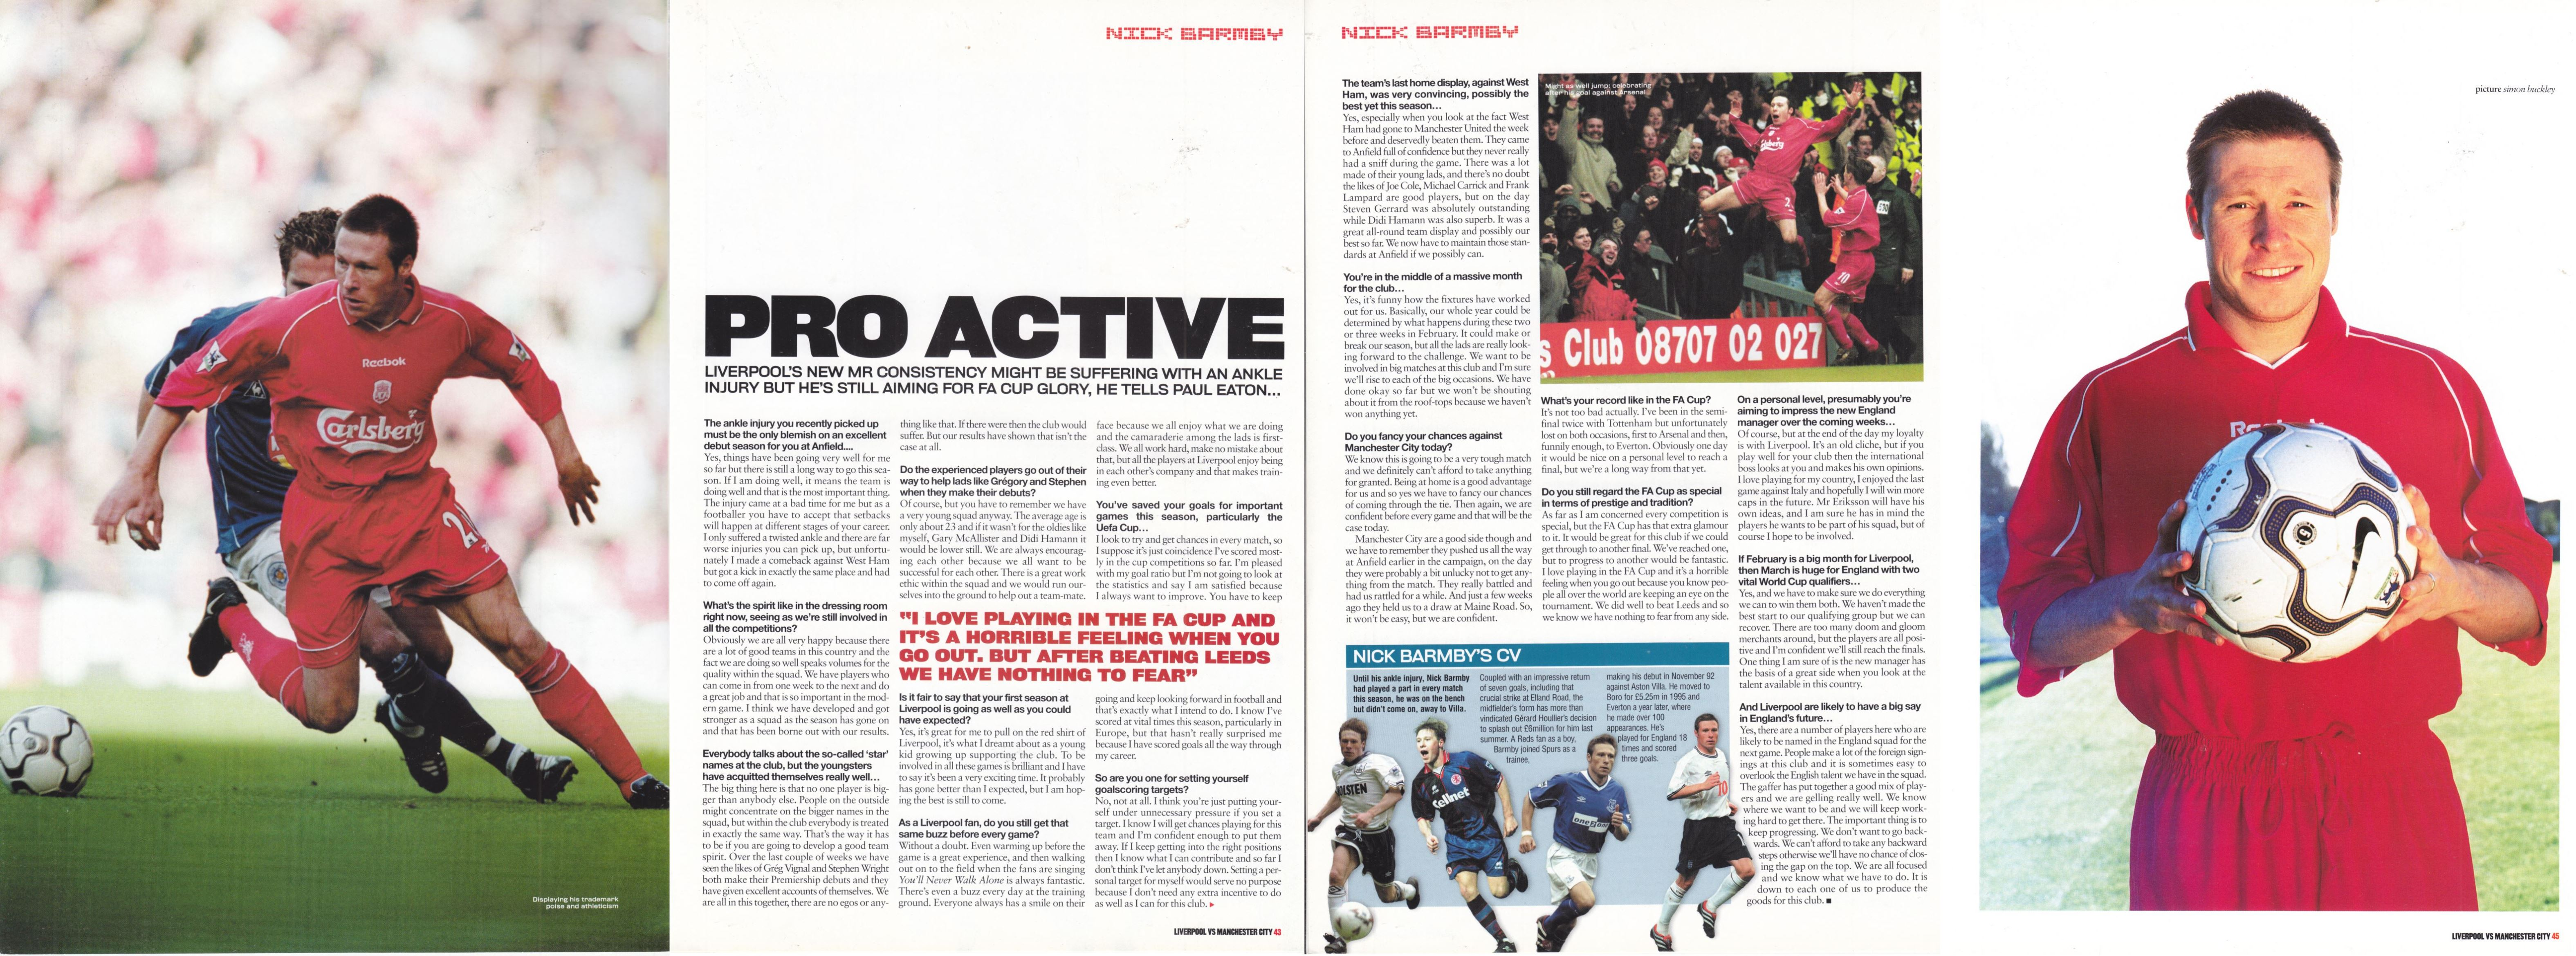 LFC Official Matchday Magazine interview February 2001